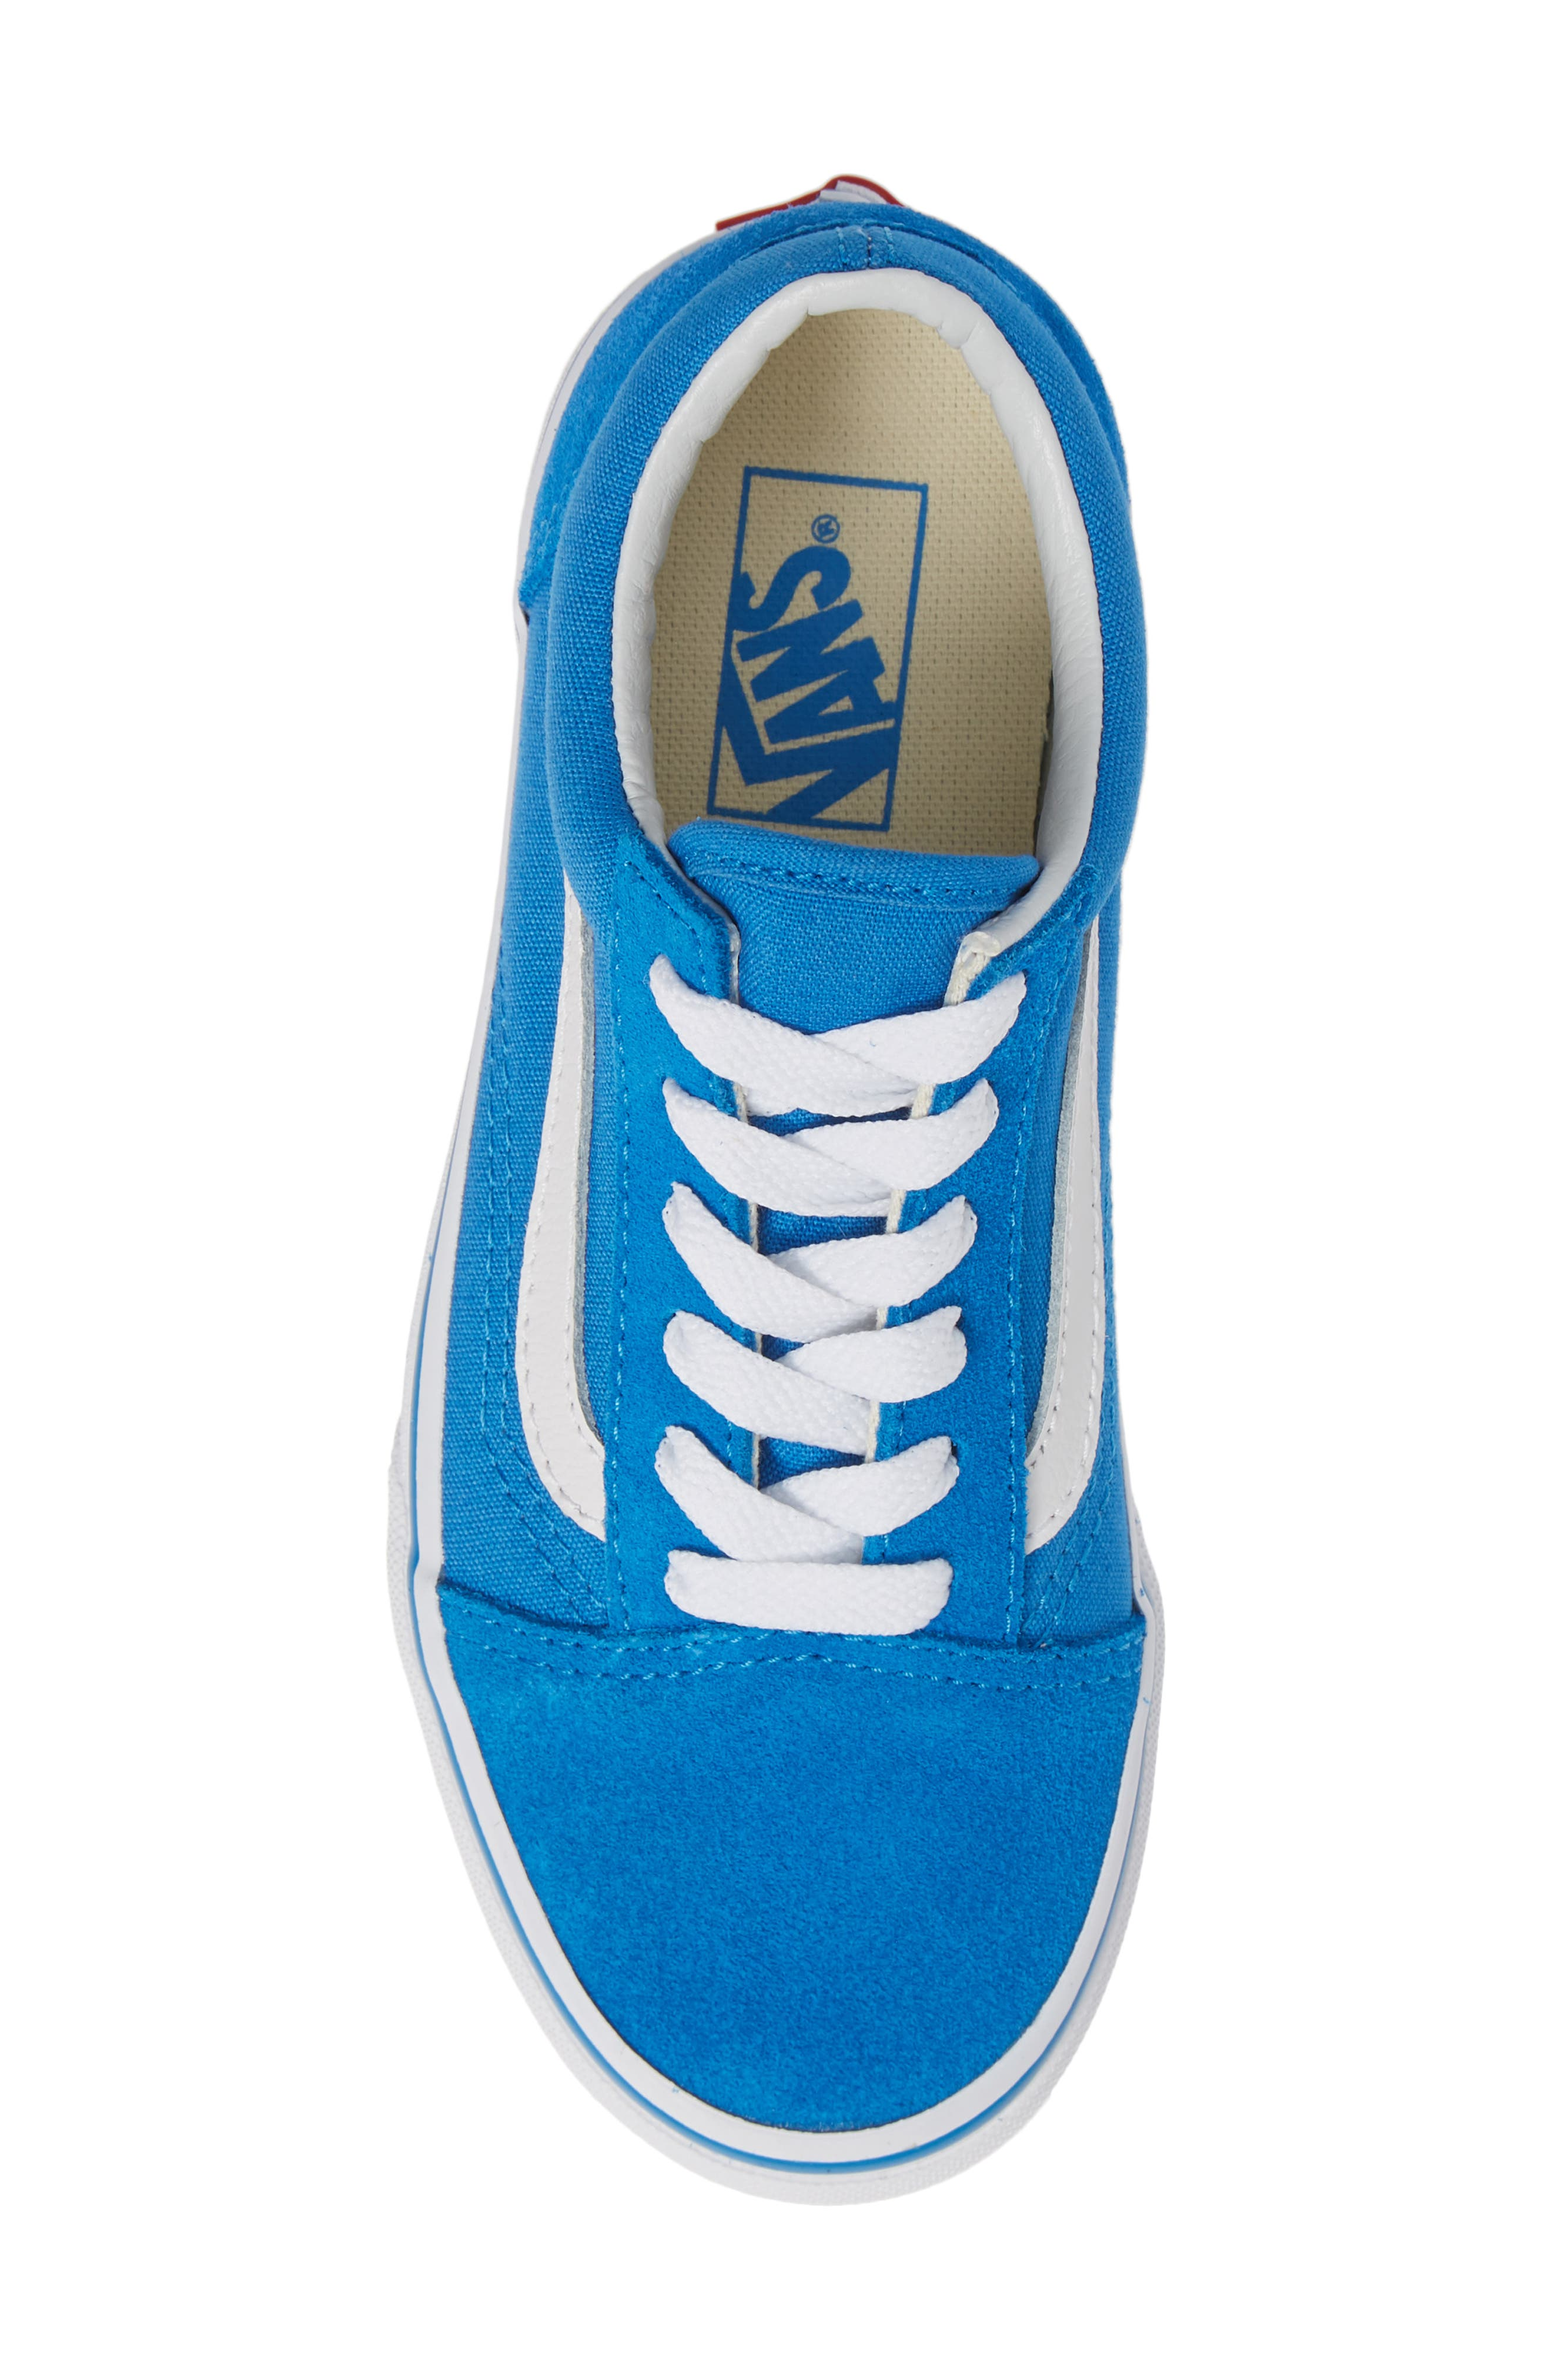 Old Skool Sneaker,                             Alternate thumbnail 5, color,                             INDIGO BUNTING/ TRUE WHITE